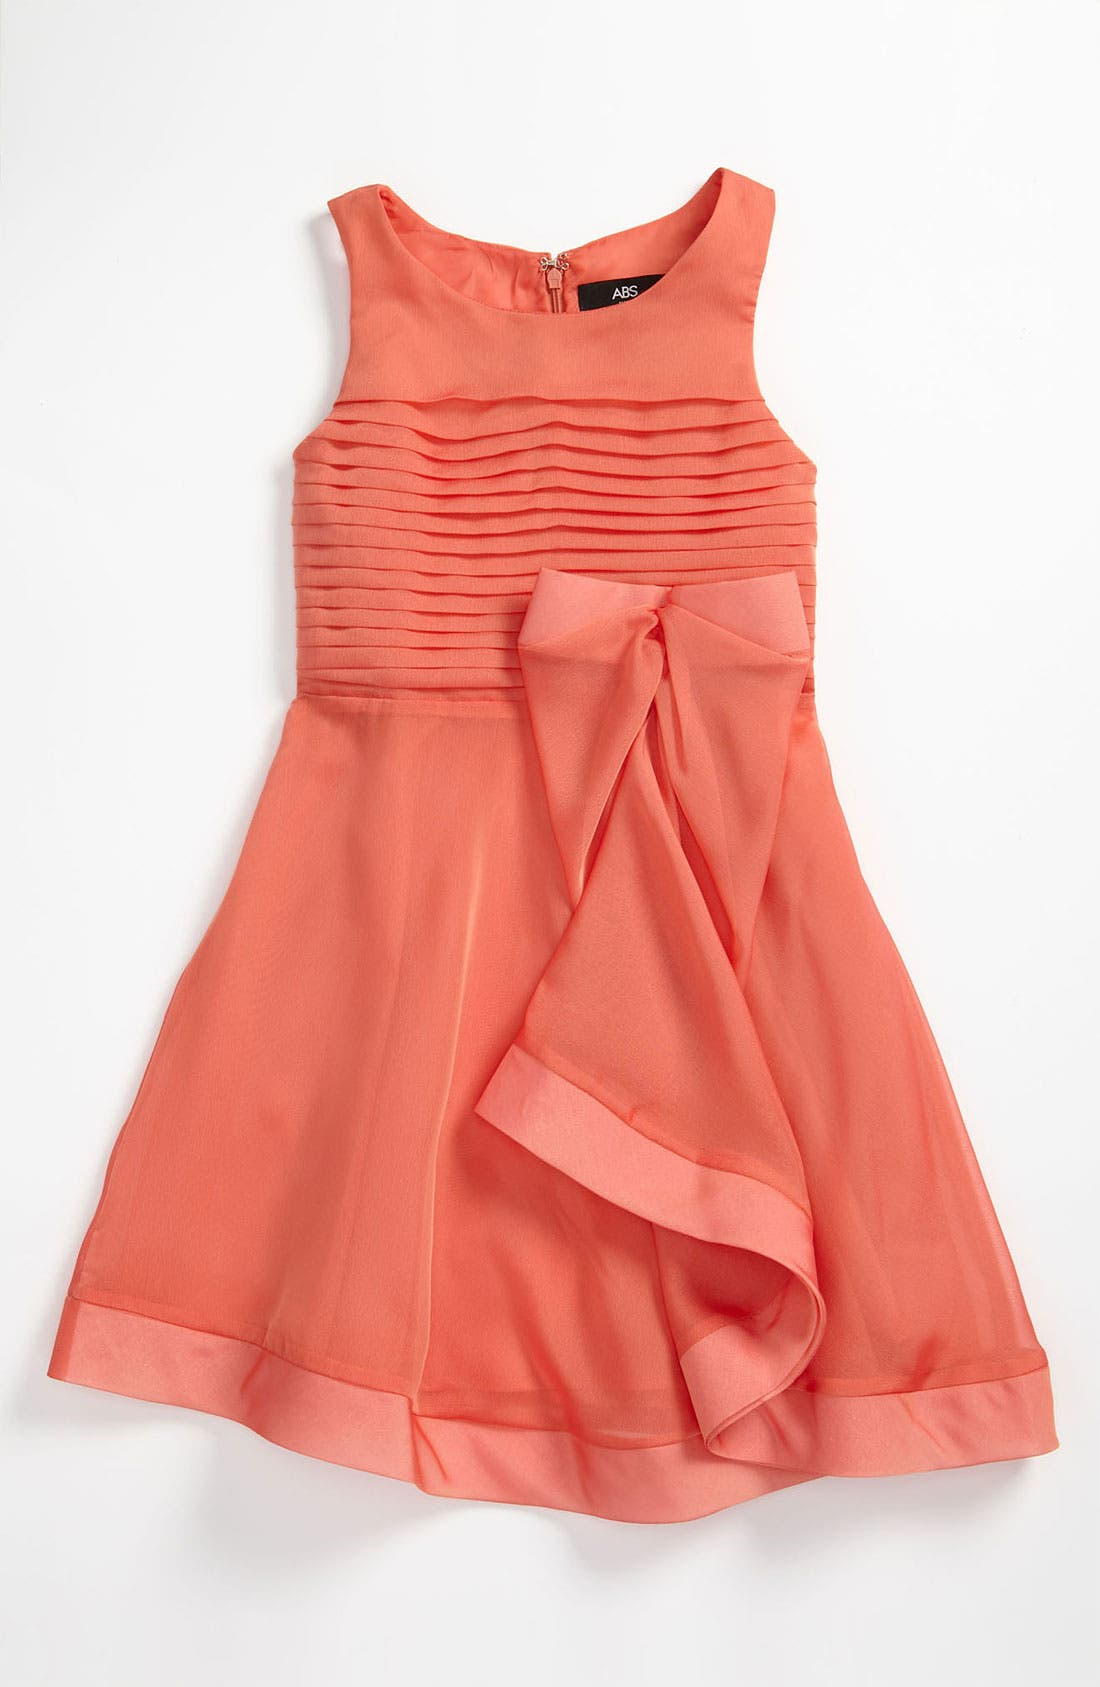 Main Image - ABS by Allen Schwartz Sleeveless Organza Dress (Big Girls)